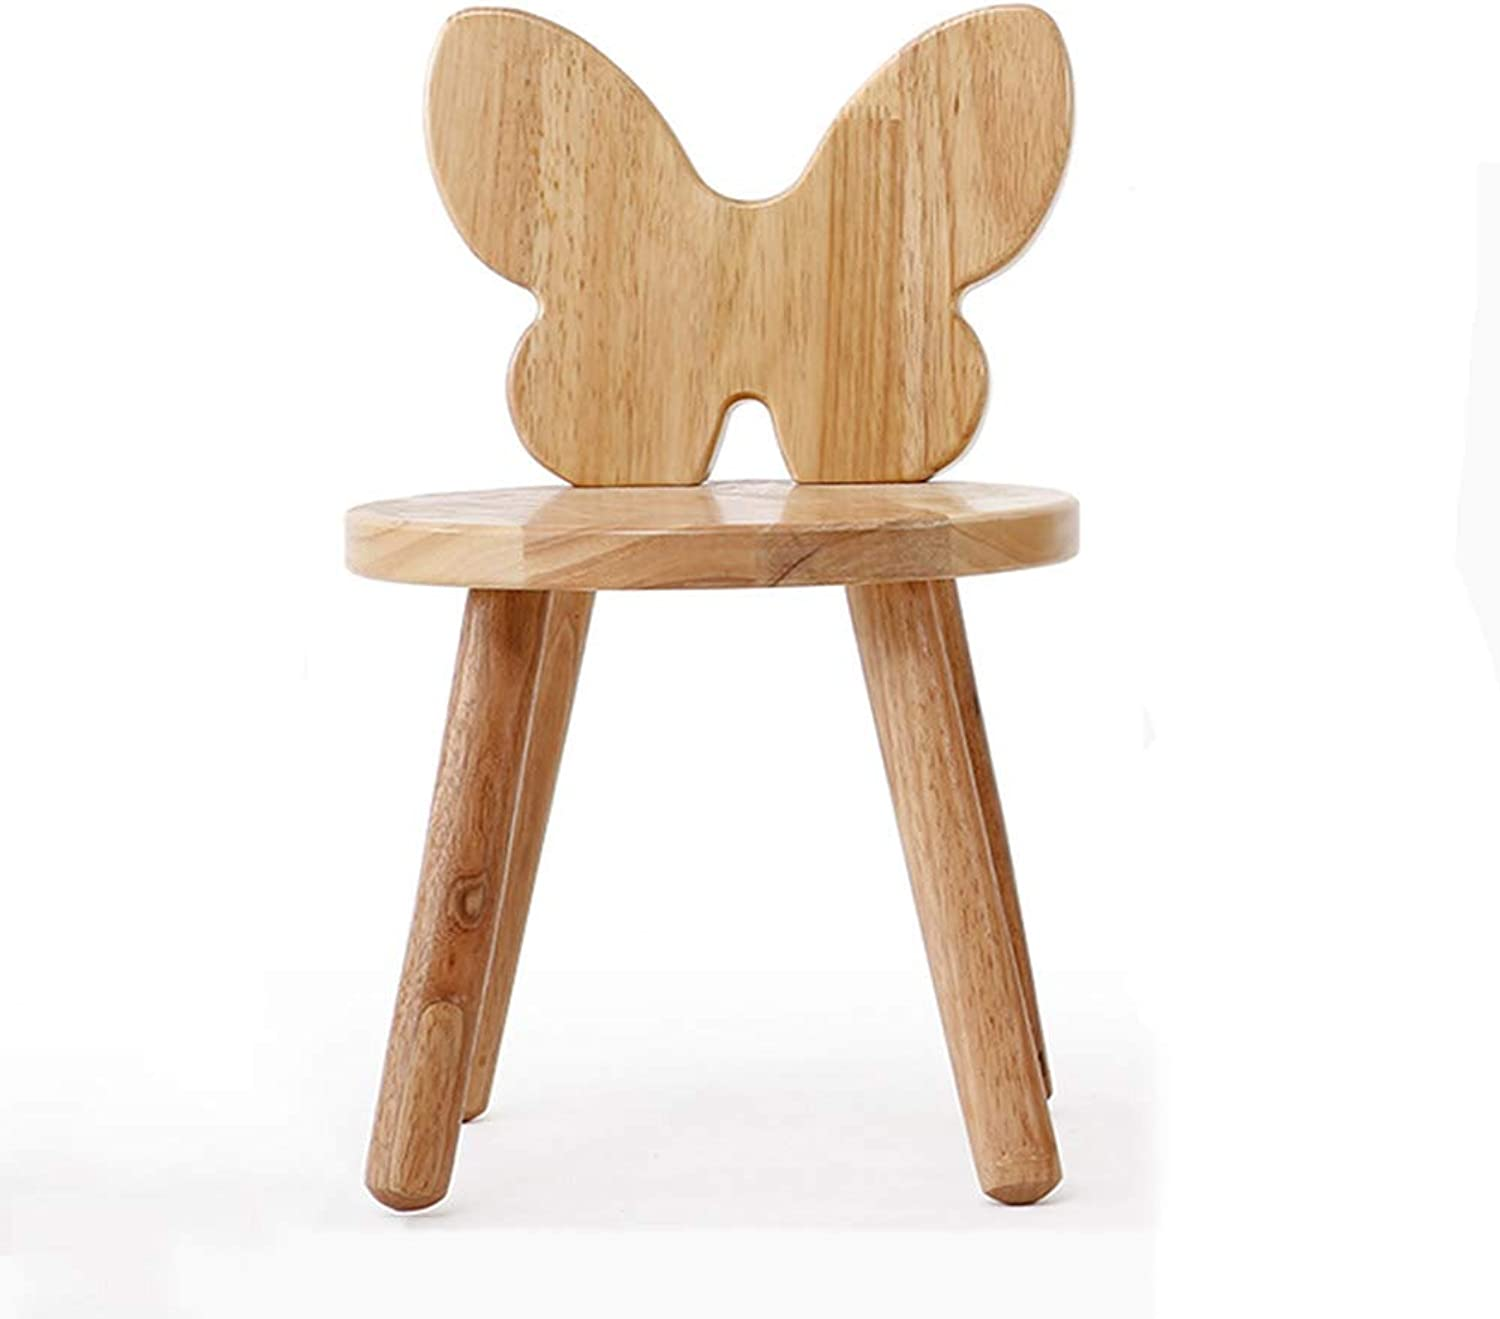 ZHAOYONGLI Stools Footstool Step Stools Work Stool Small Stool Solid Wood Back Chair Solid Wood Small Bench Home Cartoon Stool Creative Solid Durable Long Lasting (color   Butterfly)